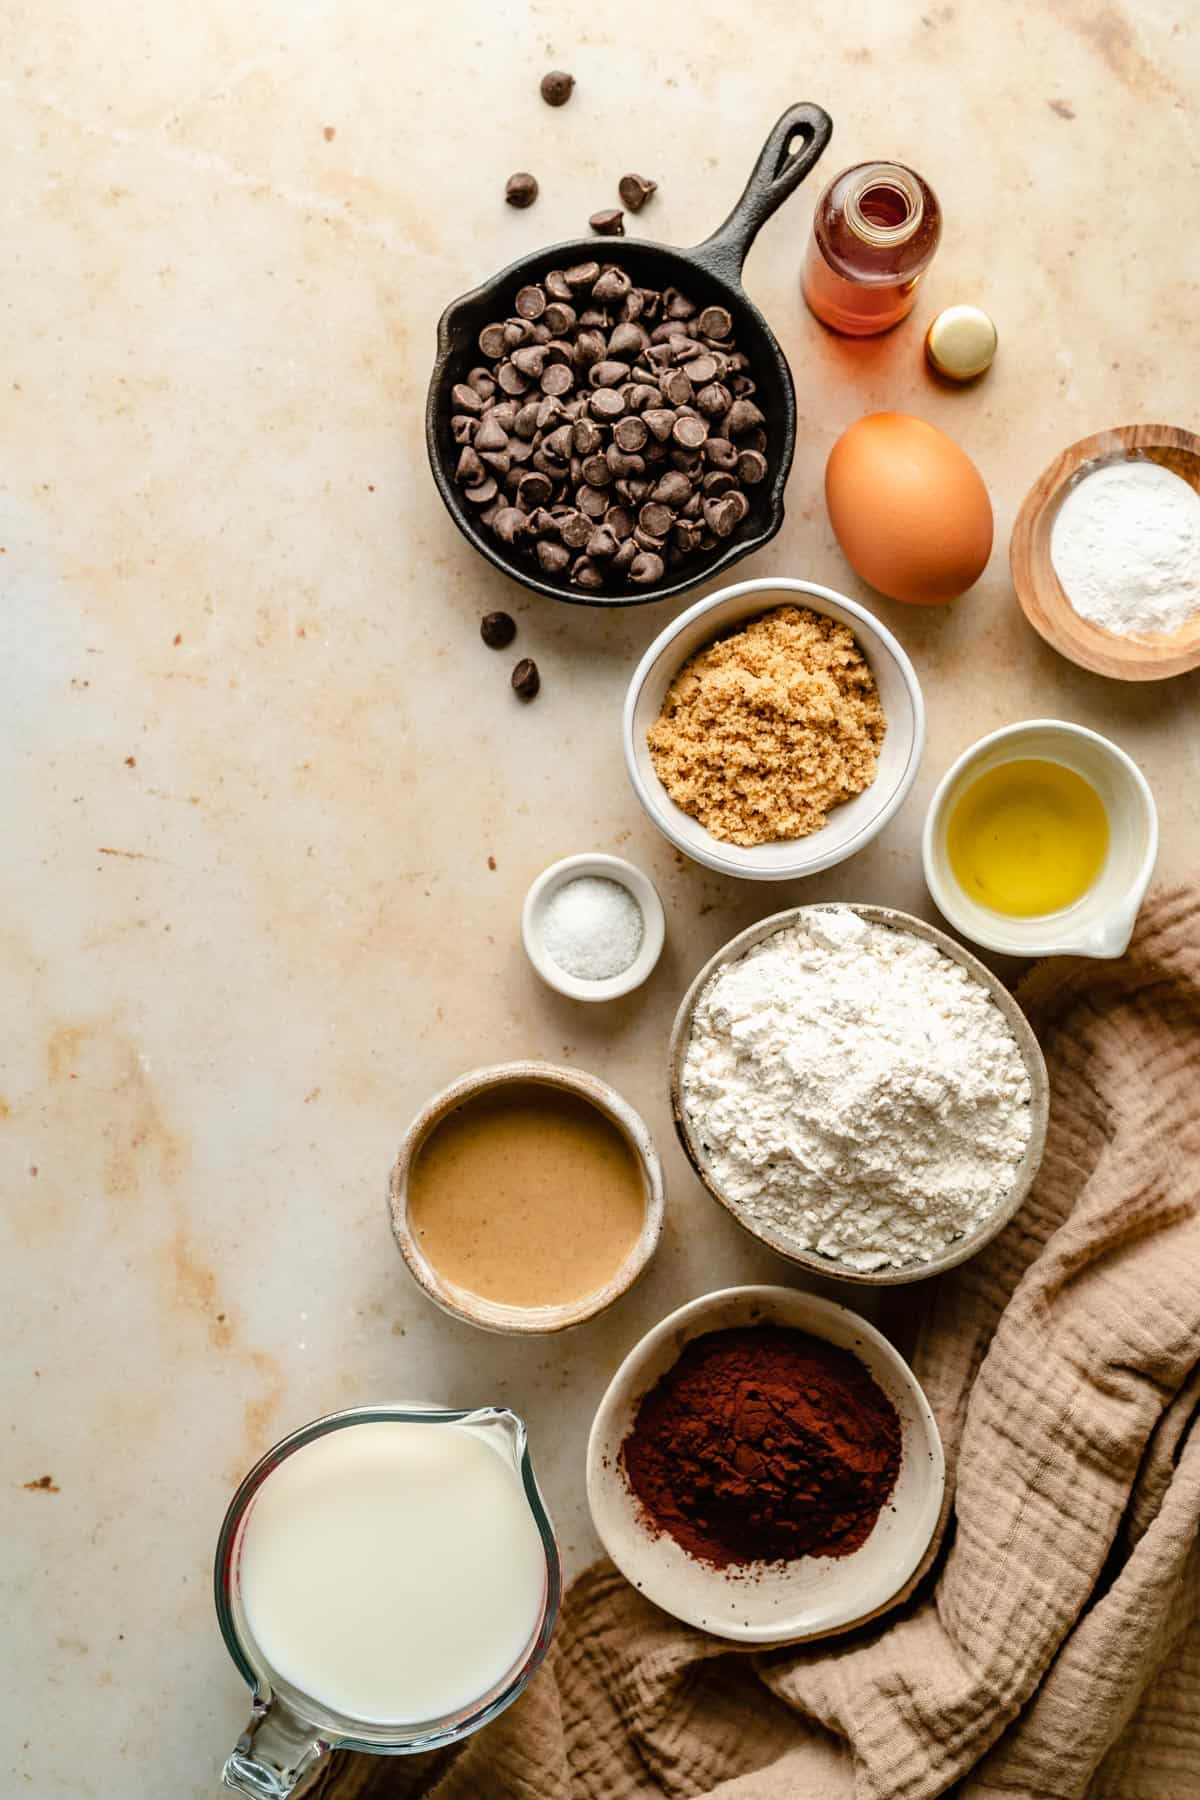 Array of ingredients for drop pancakes in various bowls including cocoa powder.